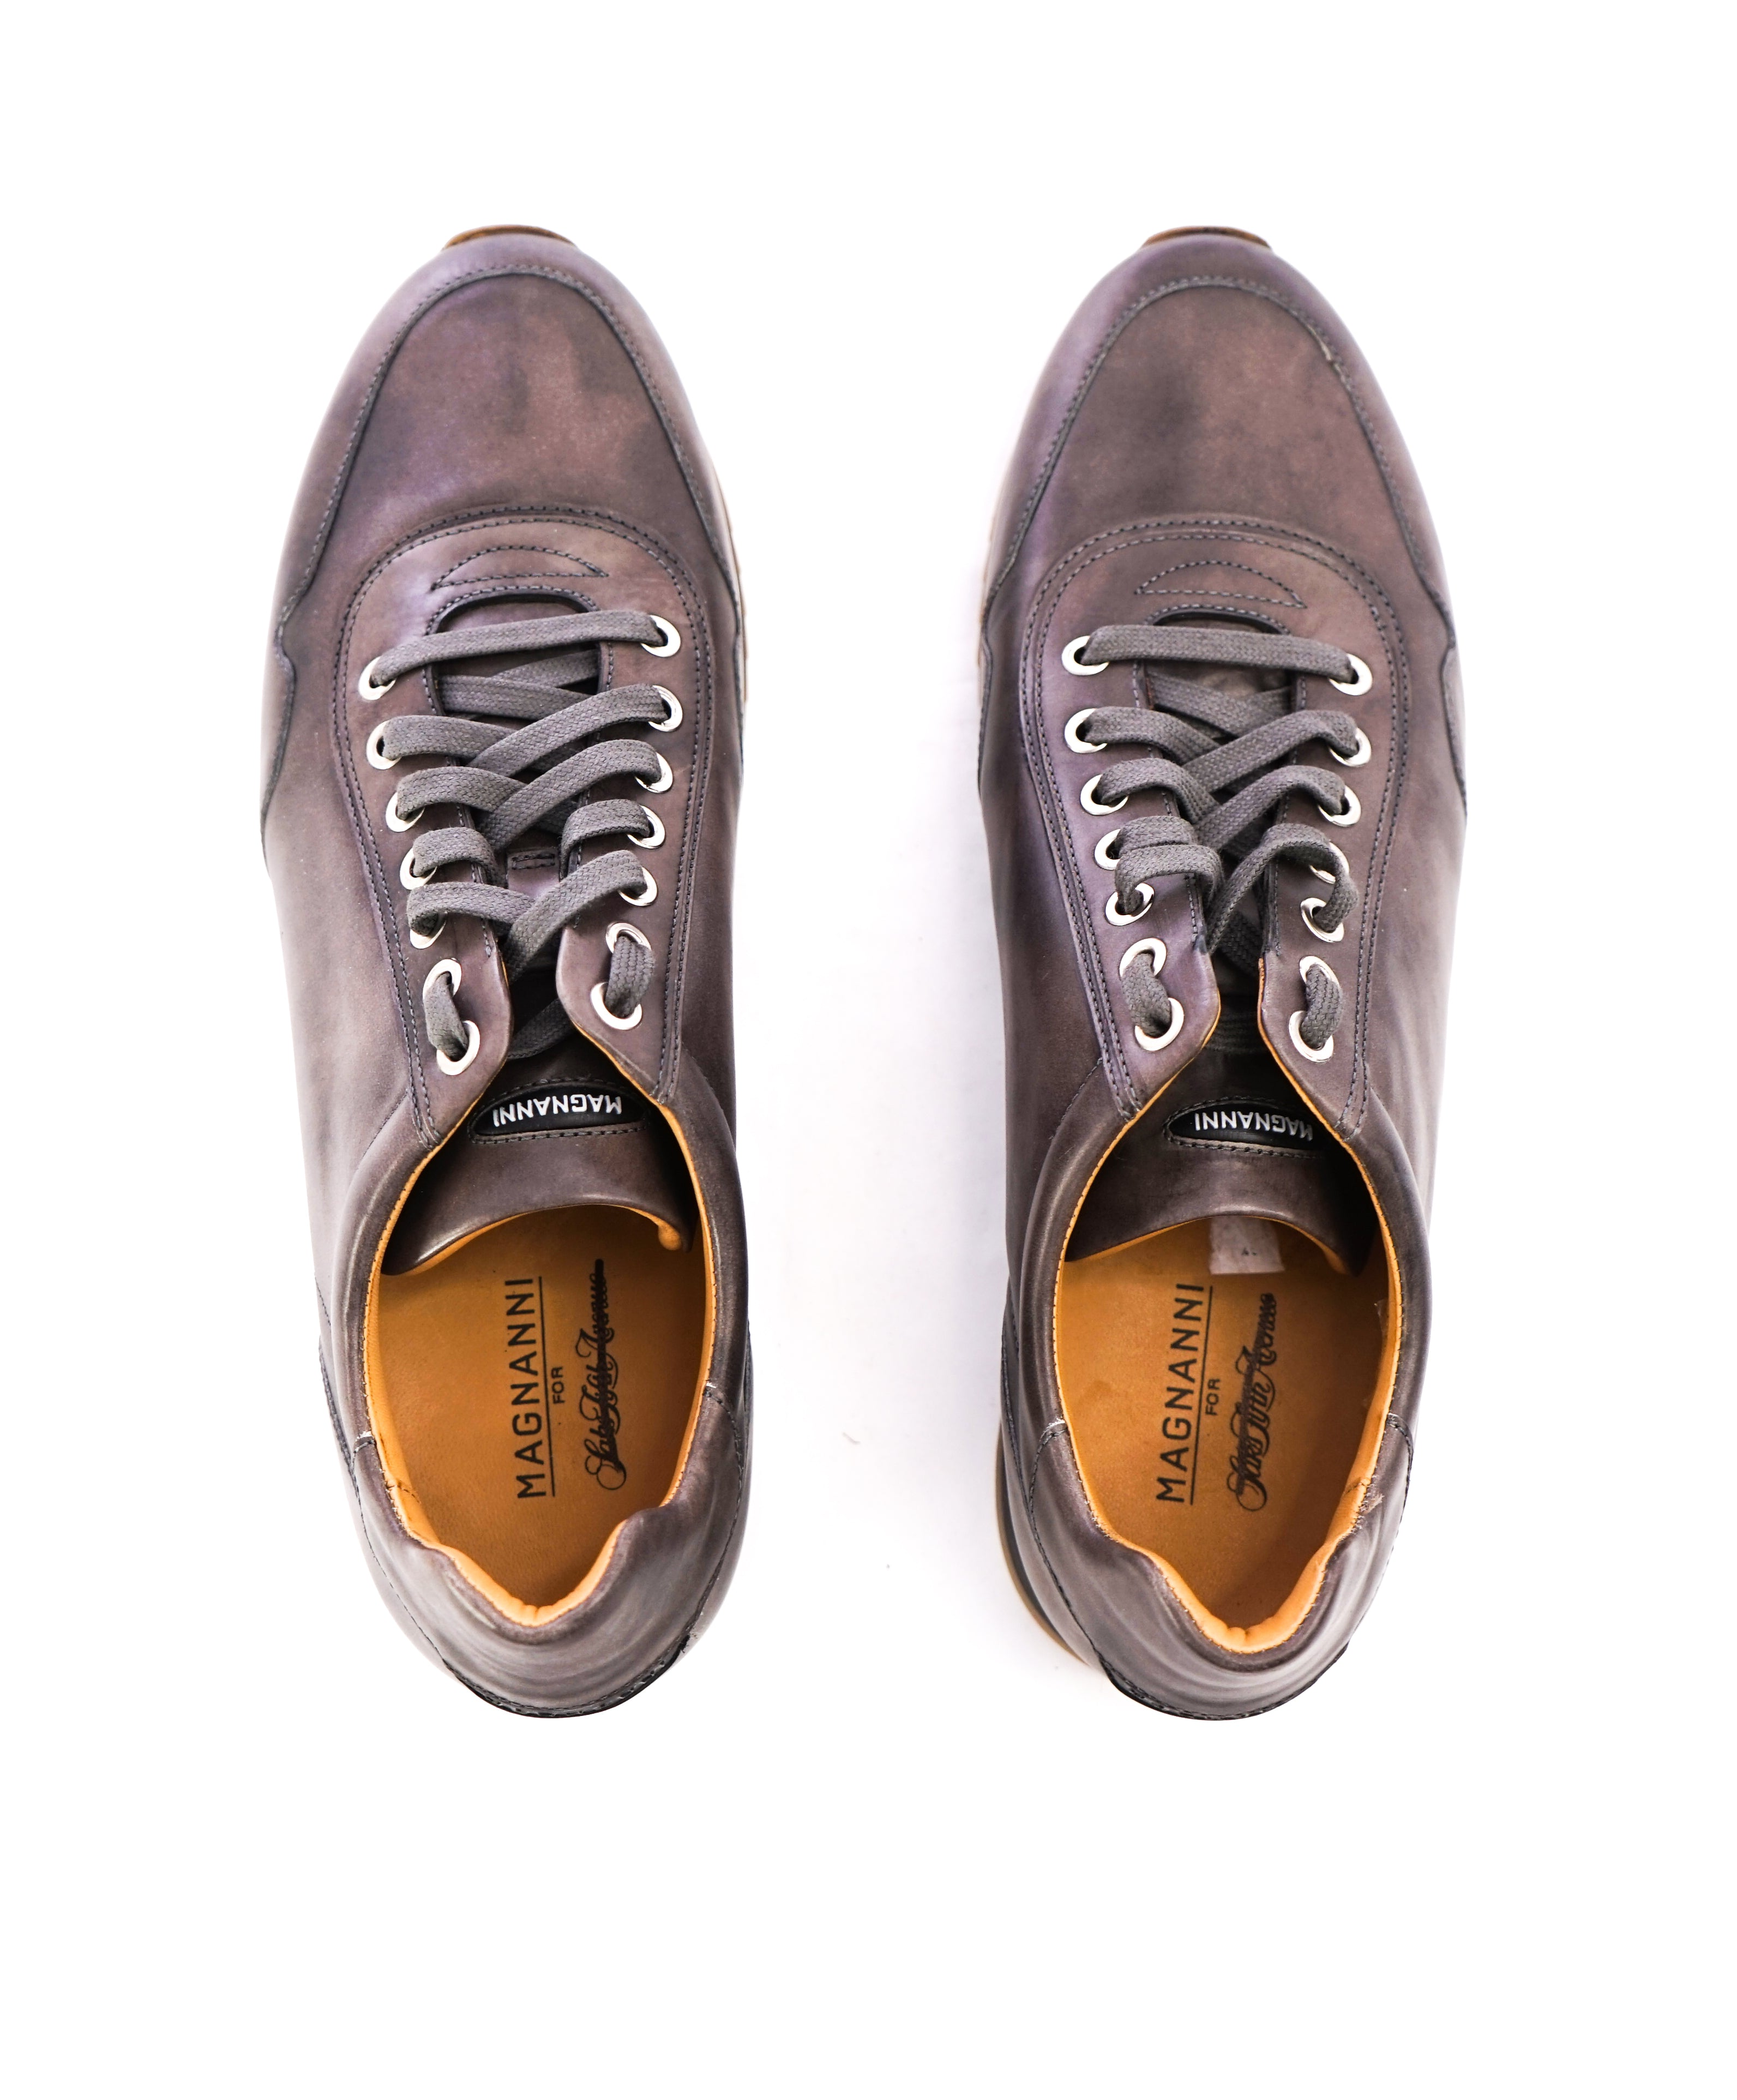 MAGNANNI - Lace Up Gray Patina Leather Sneakers W Rubber Sole - 9